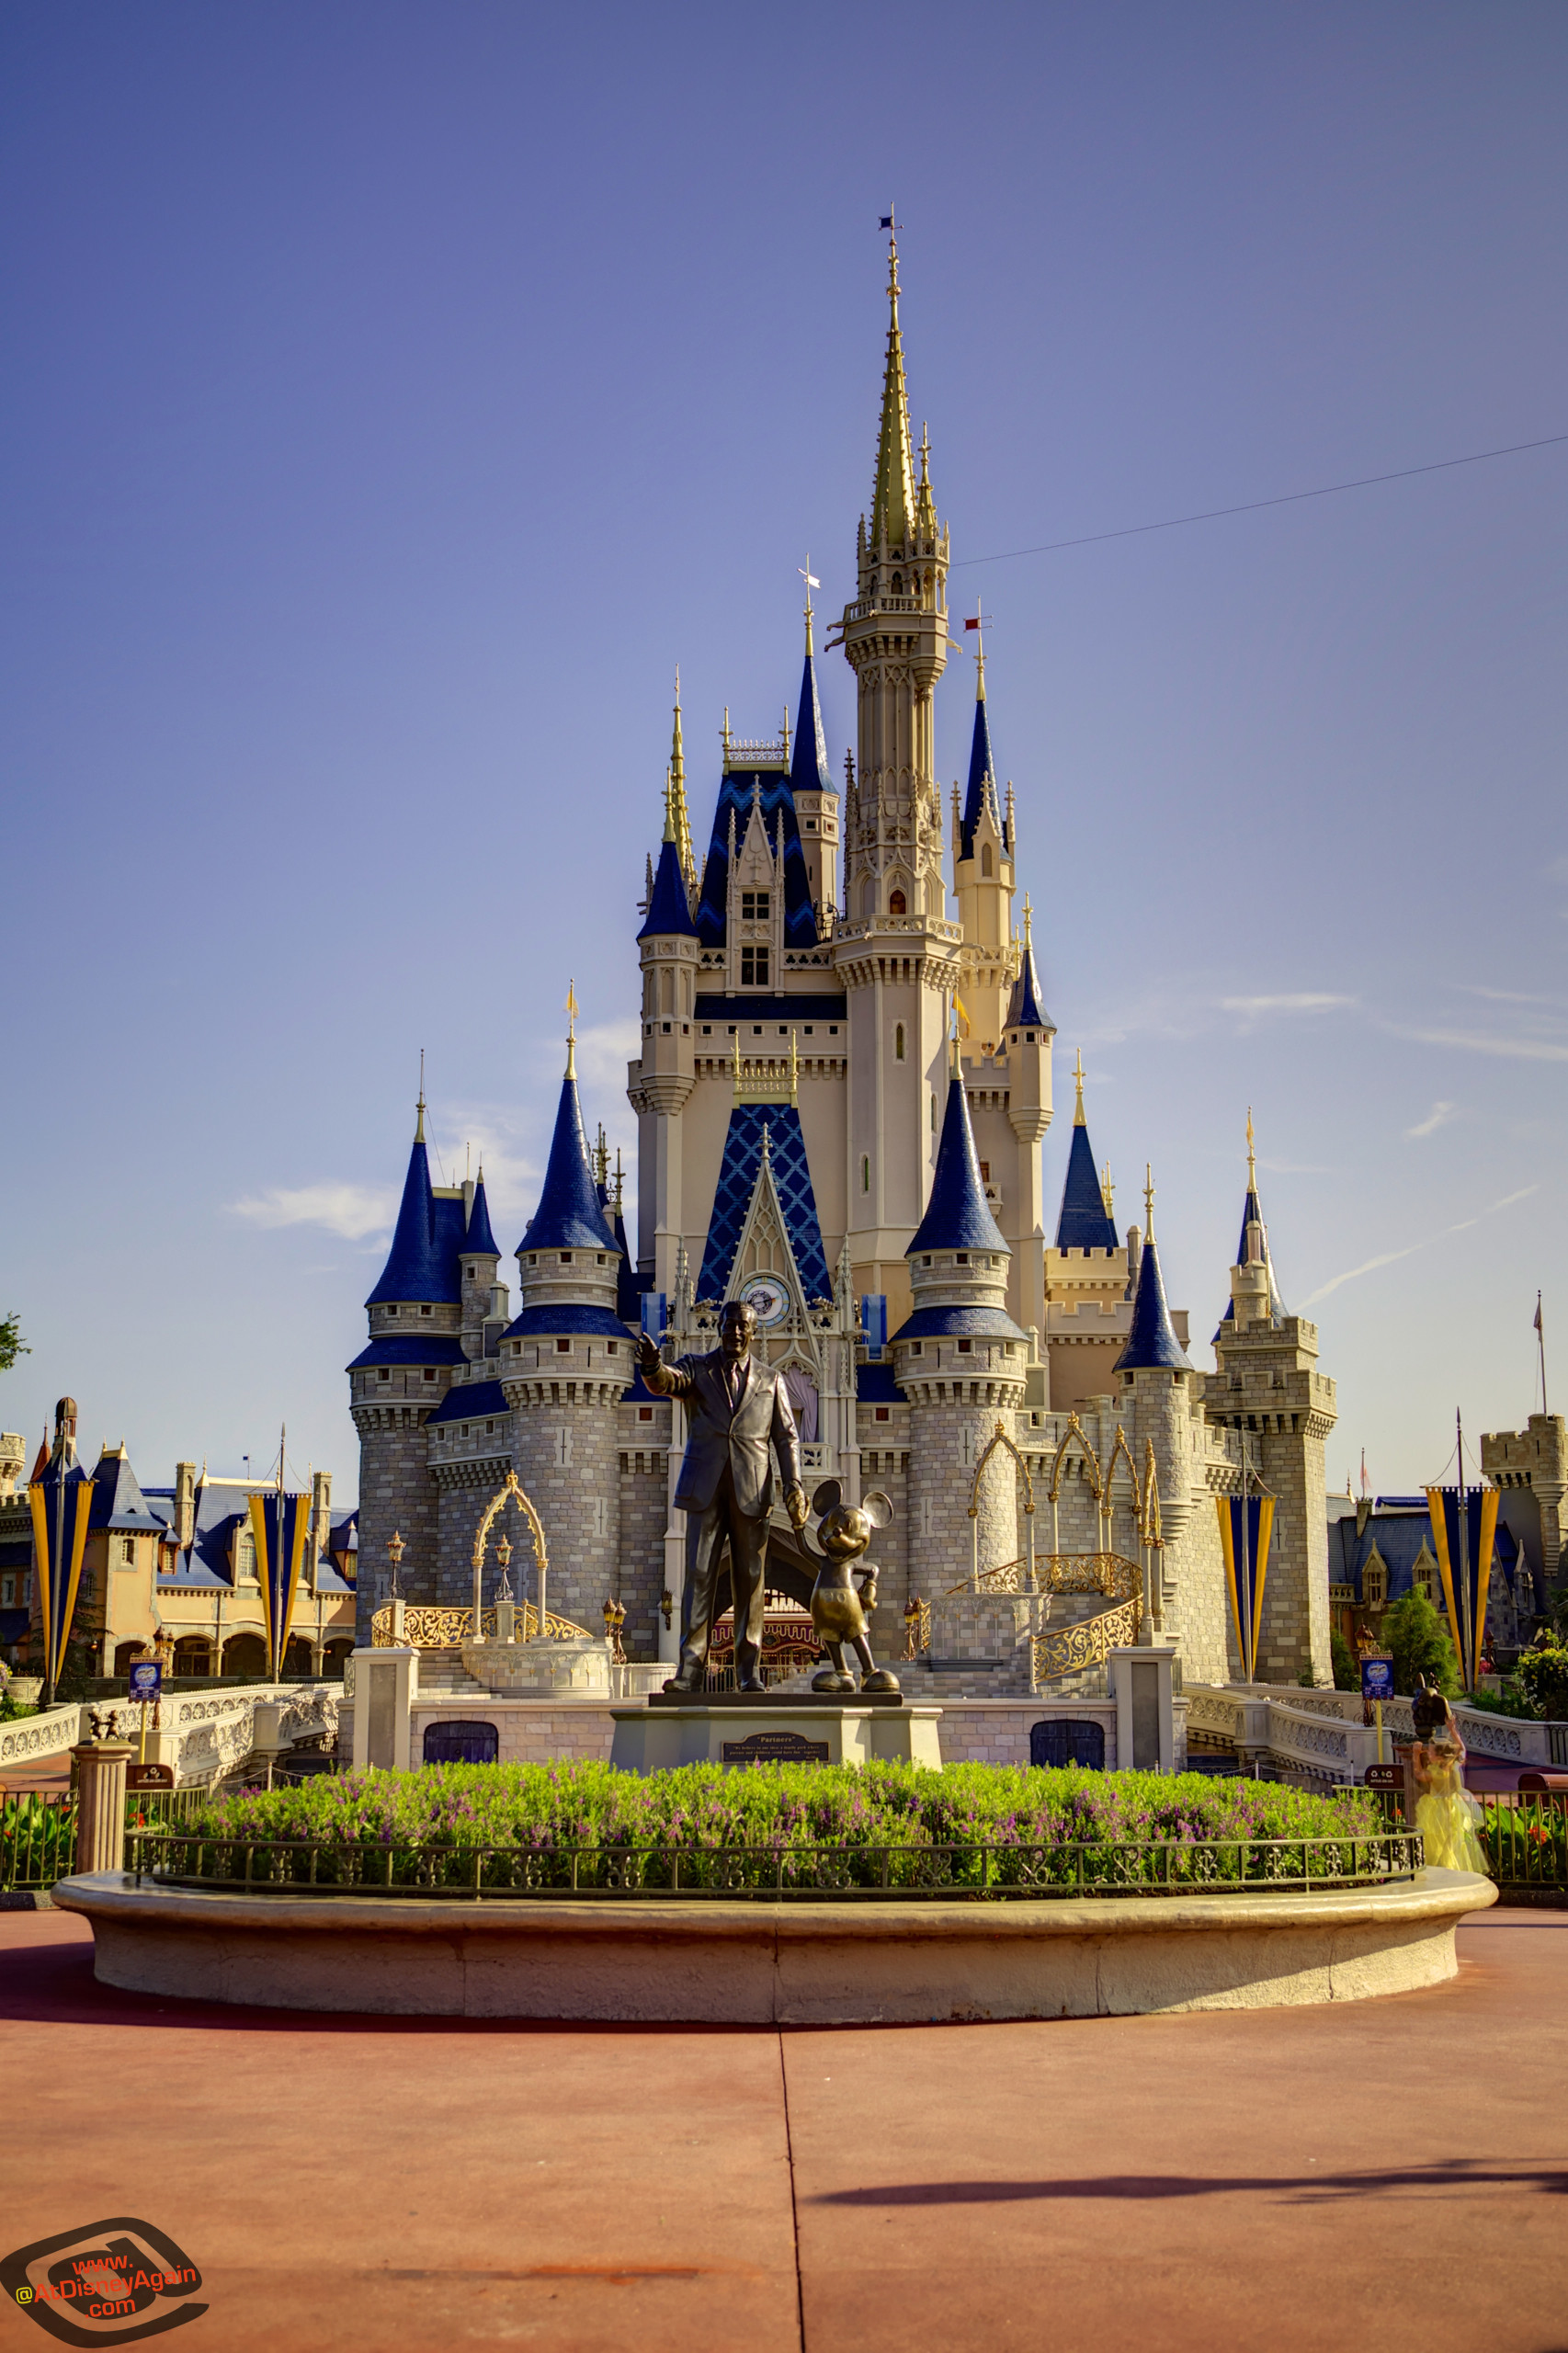 Disney castle fantasy pink girly wallpaper background   Android .